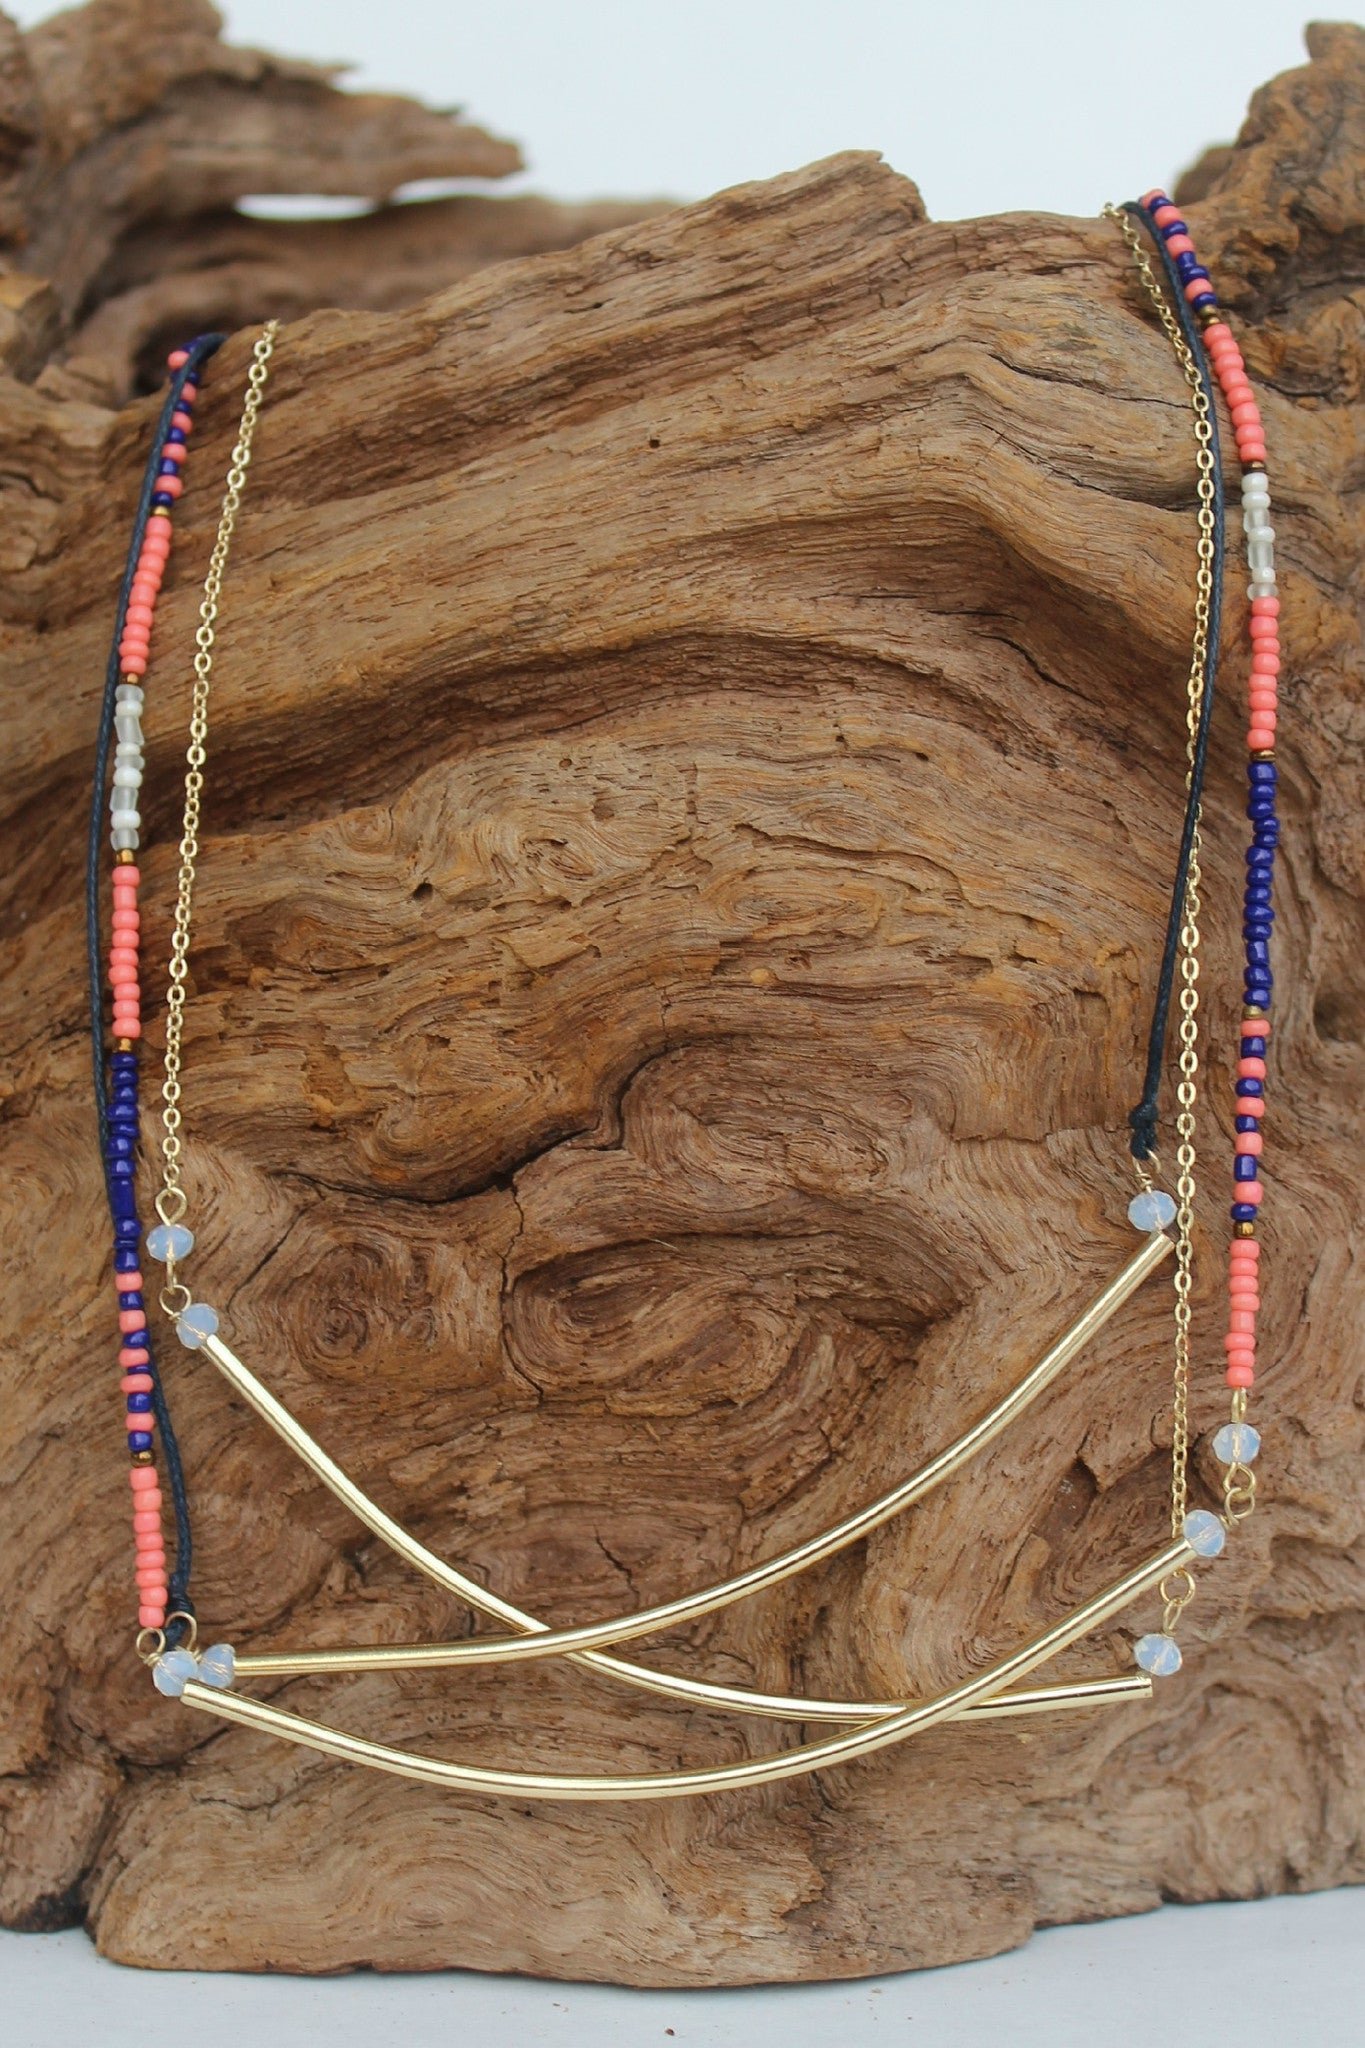 Three Strand Balance Bars and Beads Necklace, Orange